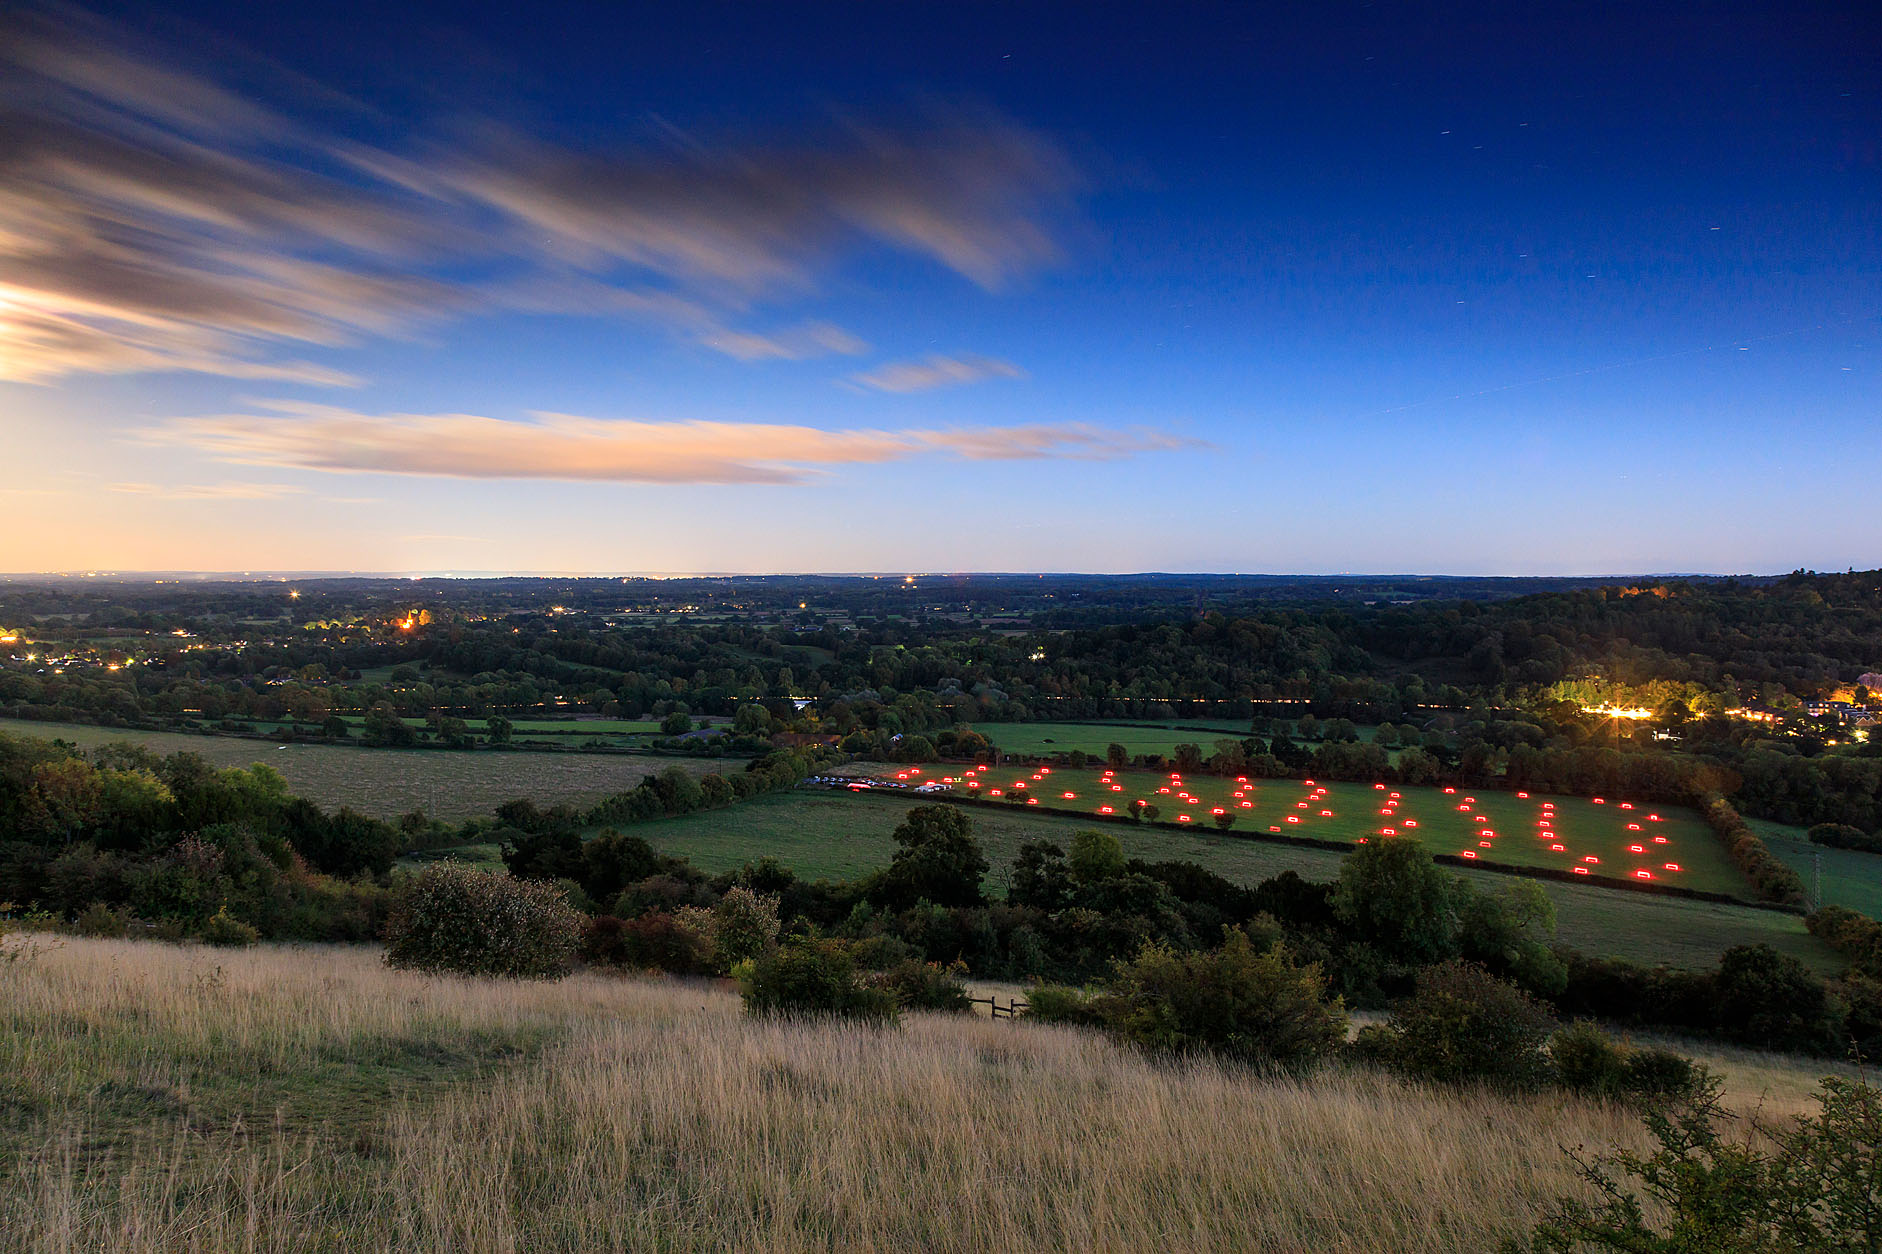 View from Box Hill. John Miller.